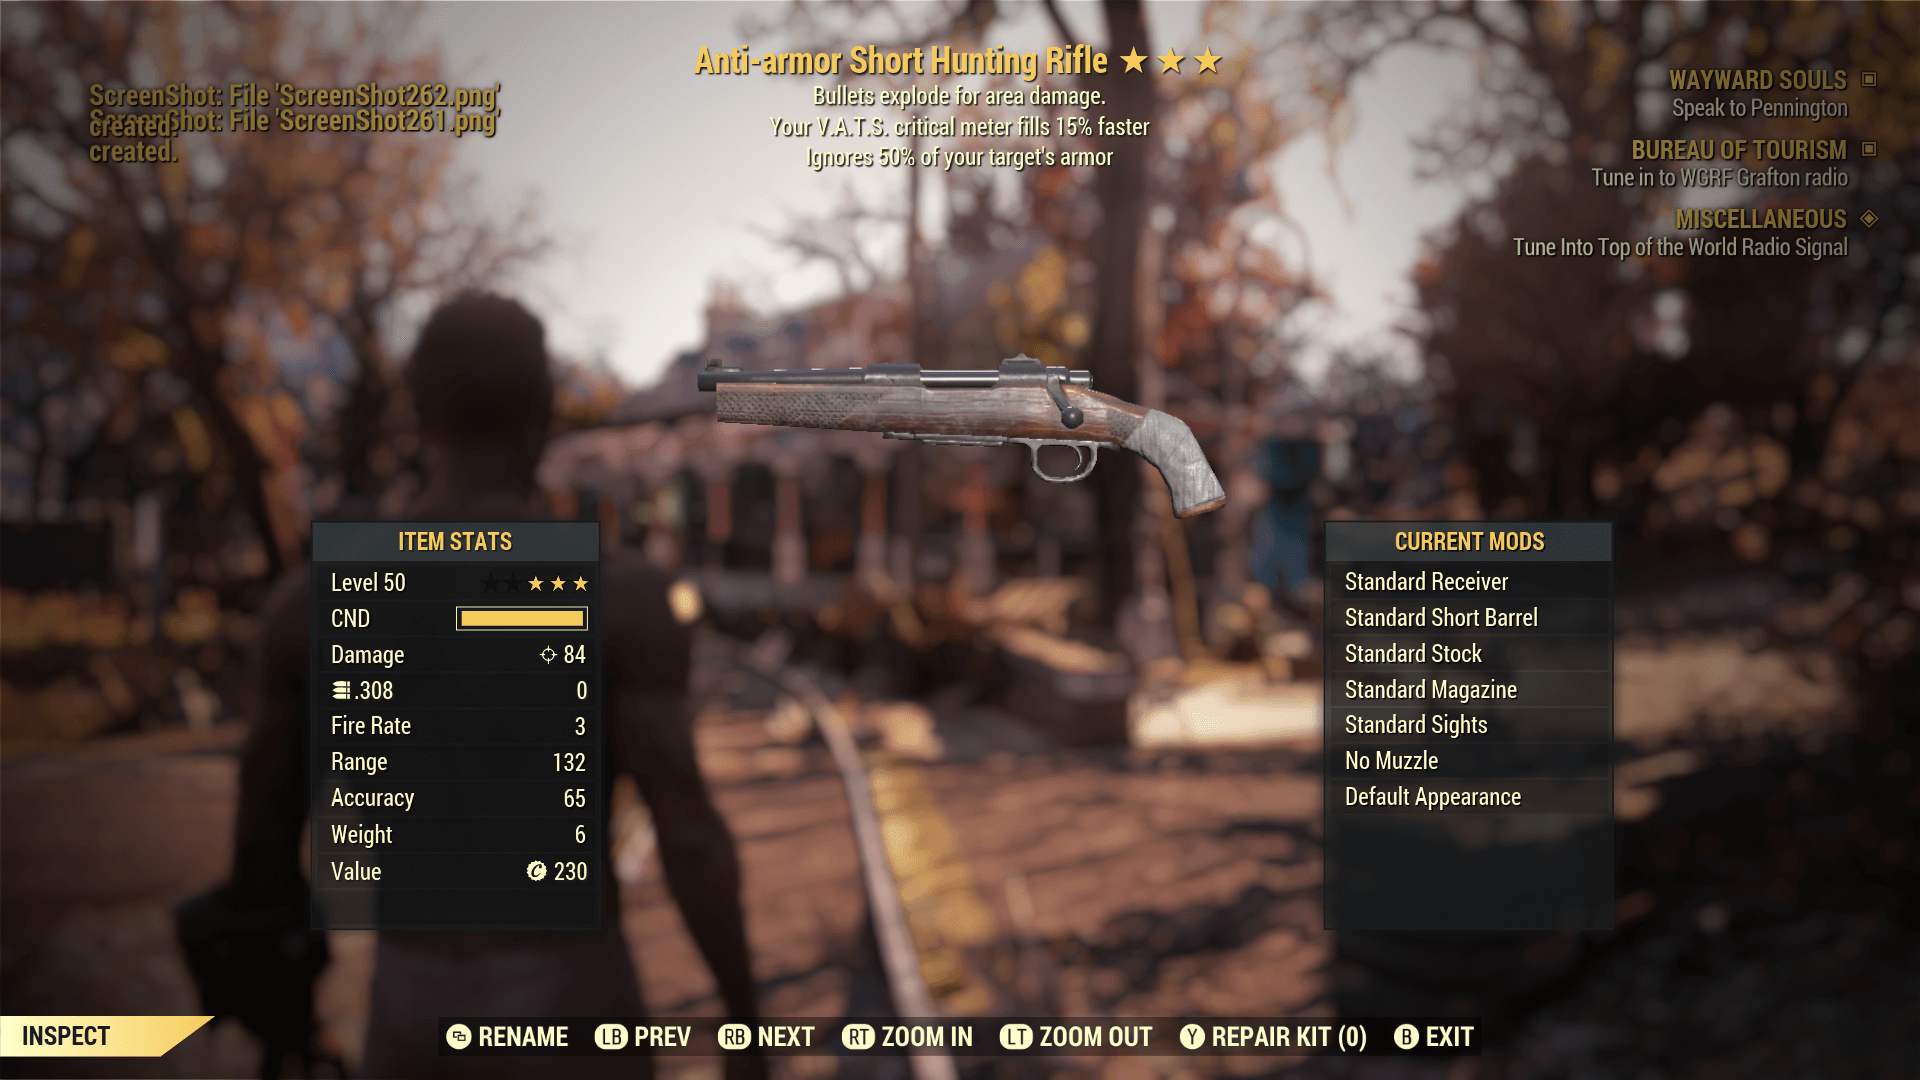 Anti-Armor Short Hunting Rifle[Your V.A.T.S.critical meter fills 15% faster+Ignores 50% of your targ